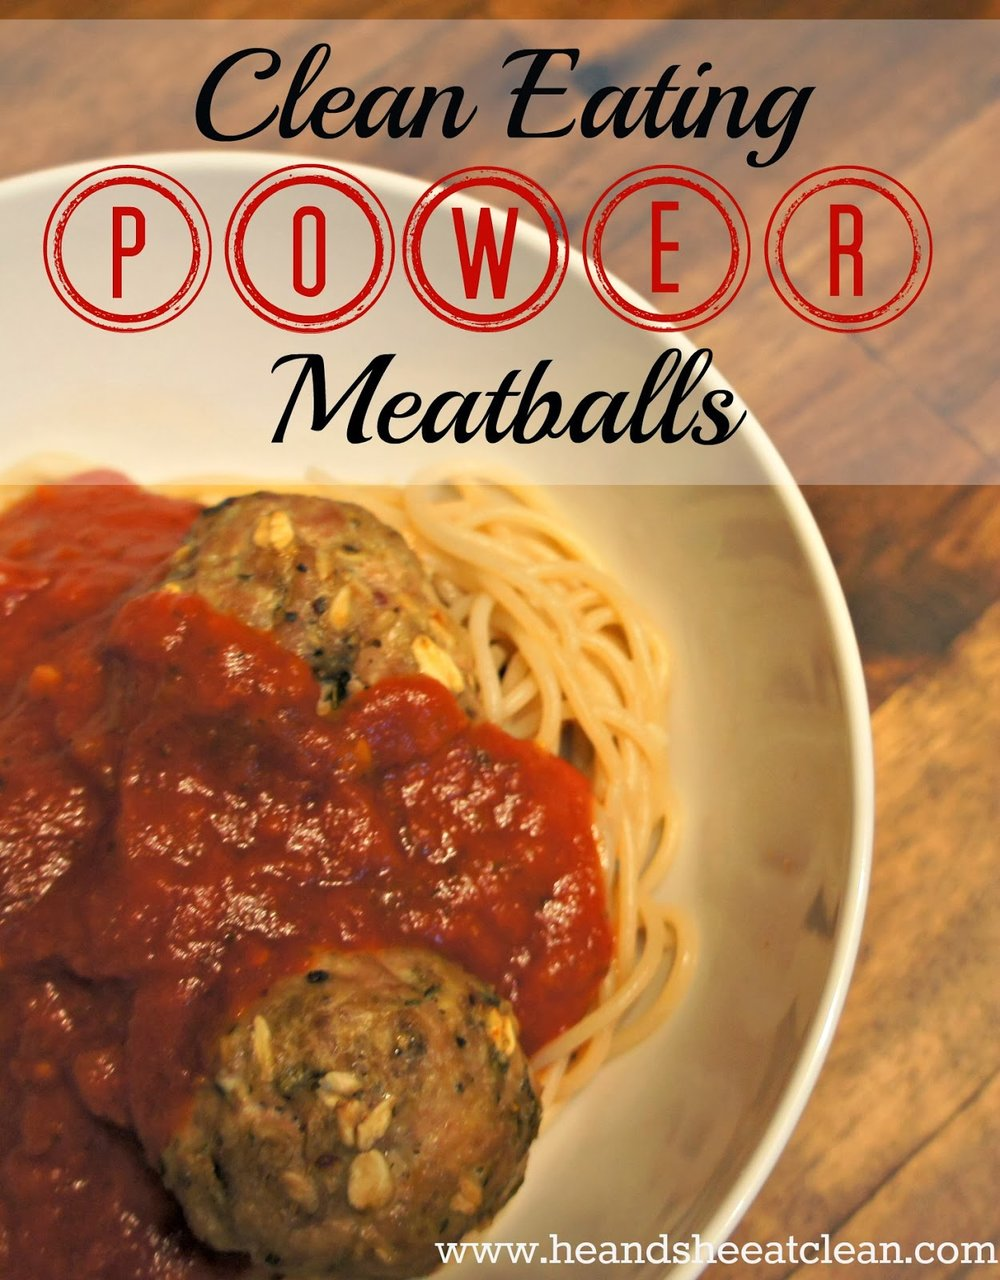 Clean Eating Power Meatballs